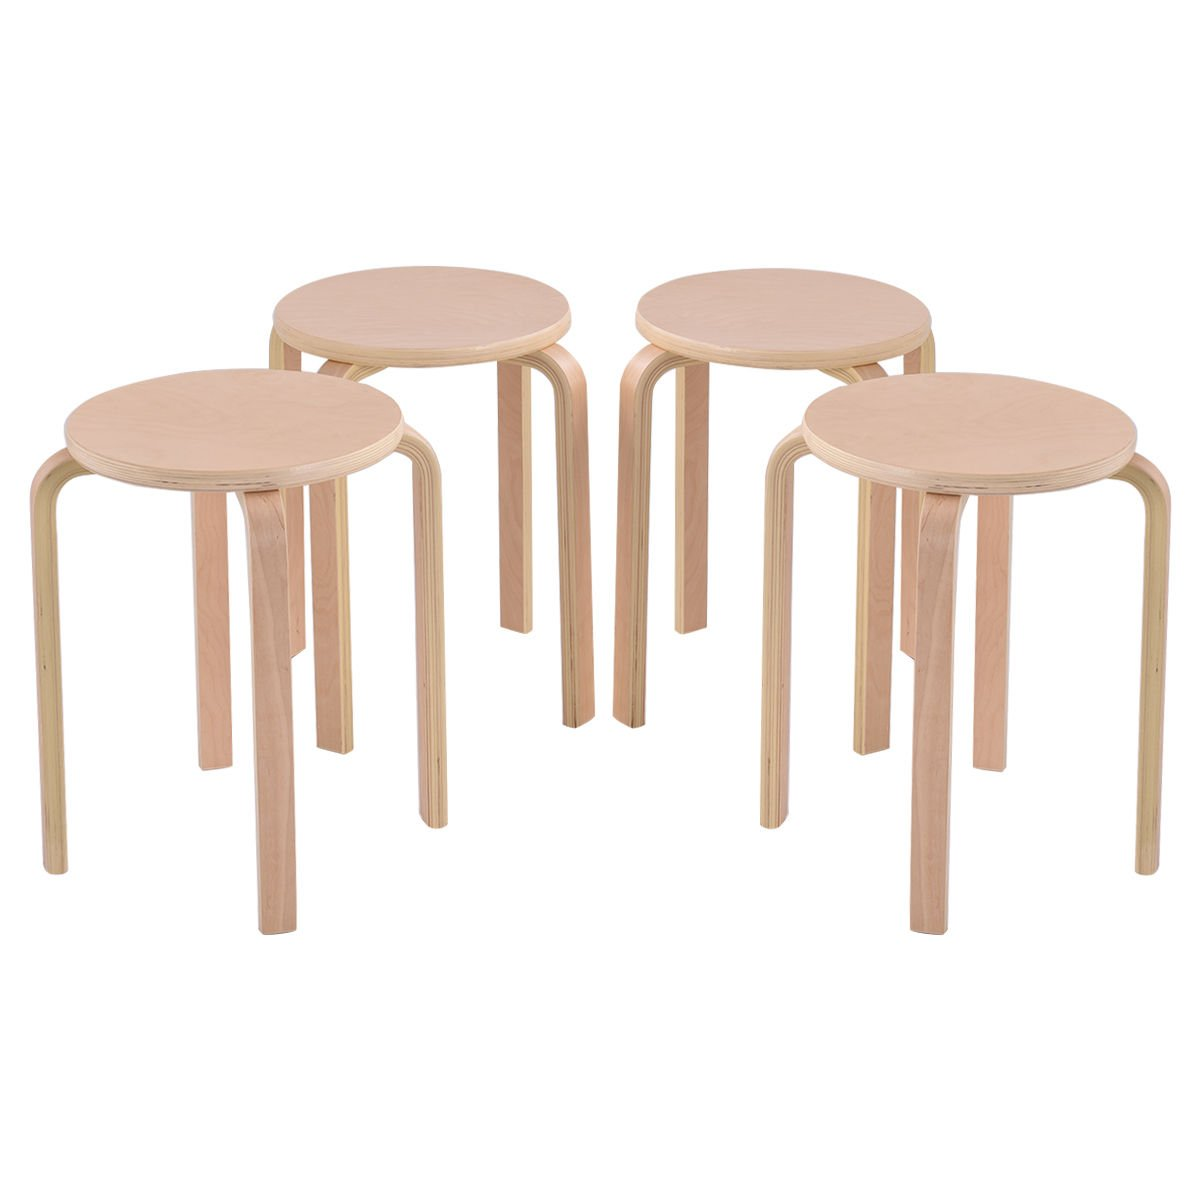 Set of 4 17-inch Bentwood Stools Stacking Home Room Furniture Decor New